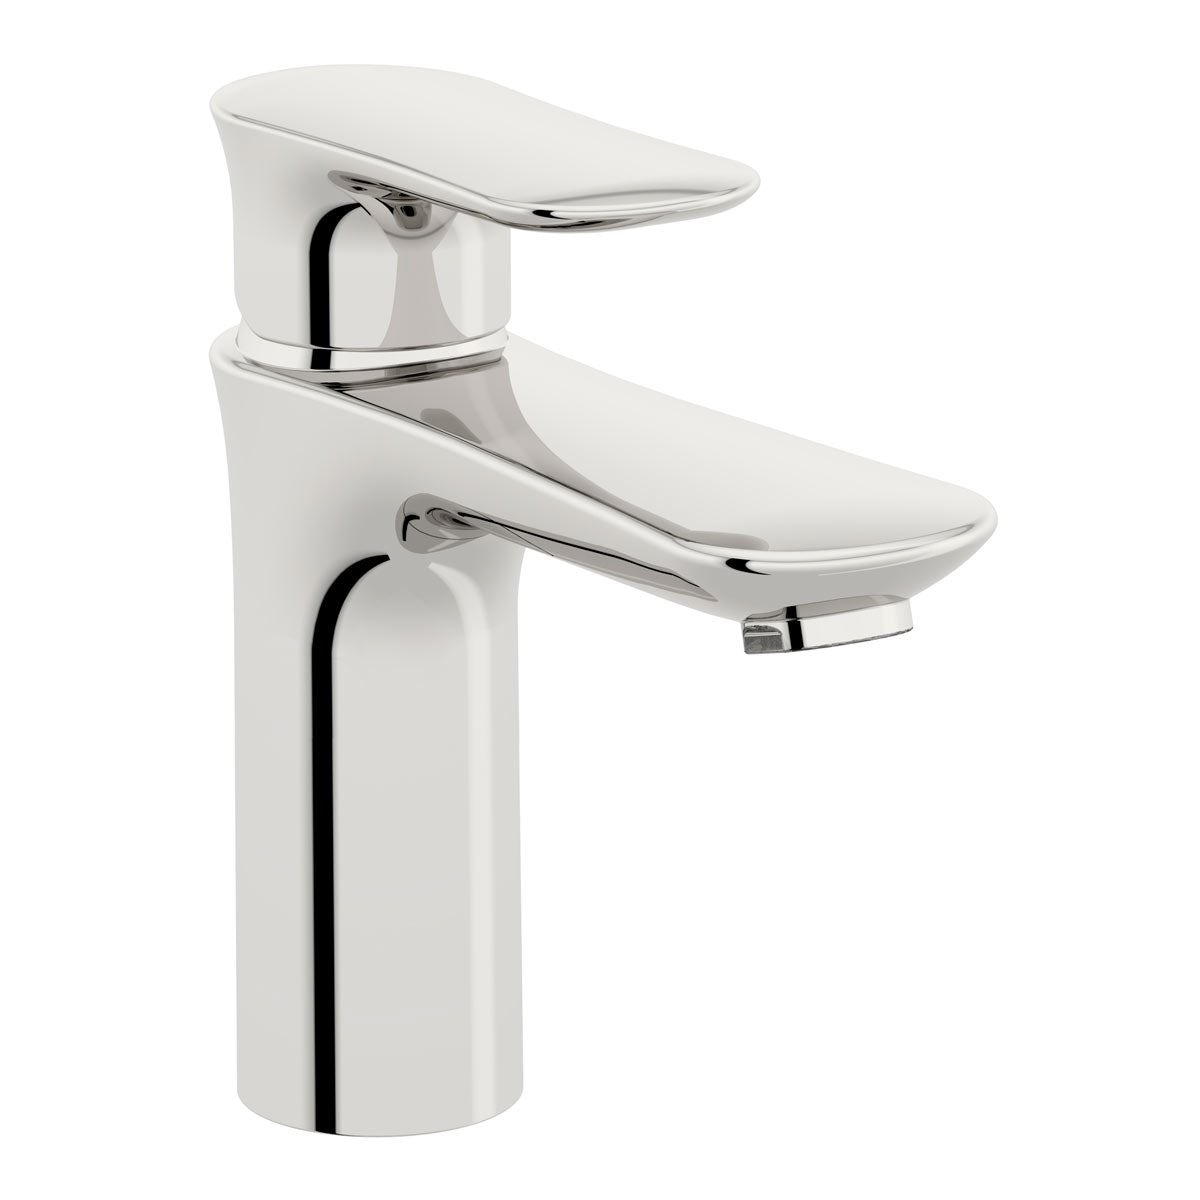 Orchard Cleanse basin mixer tap offer pack